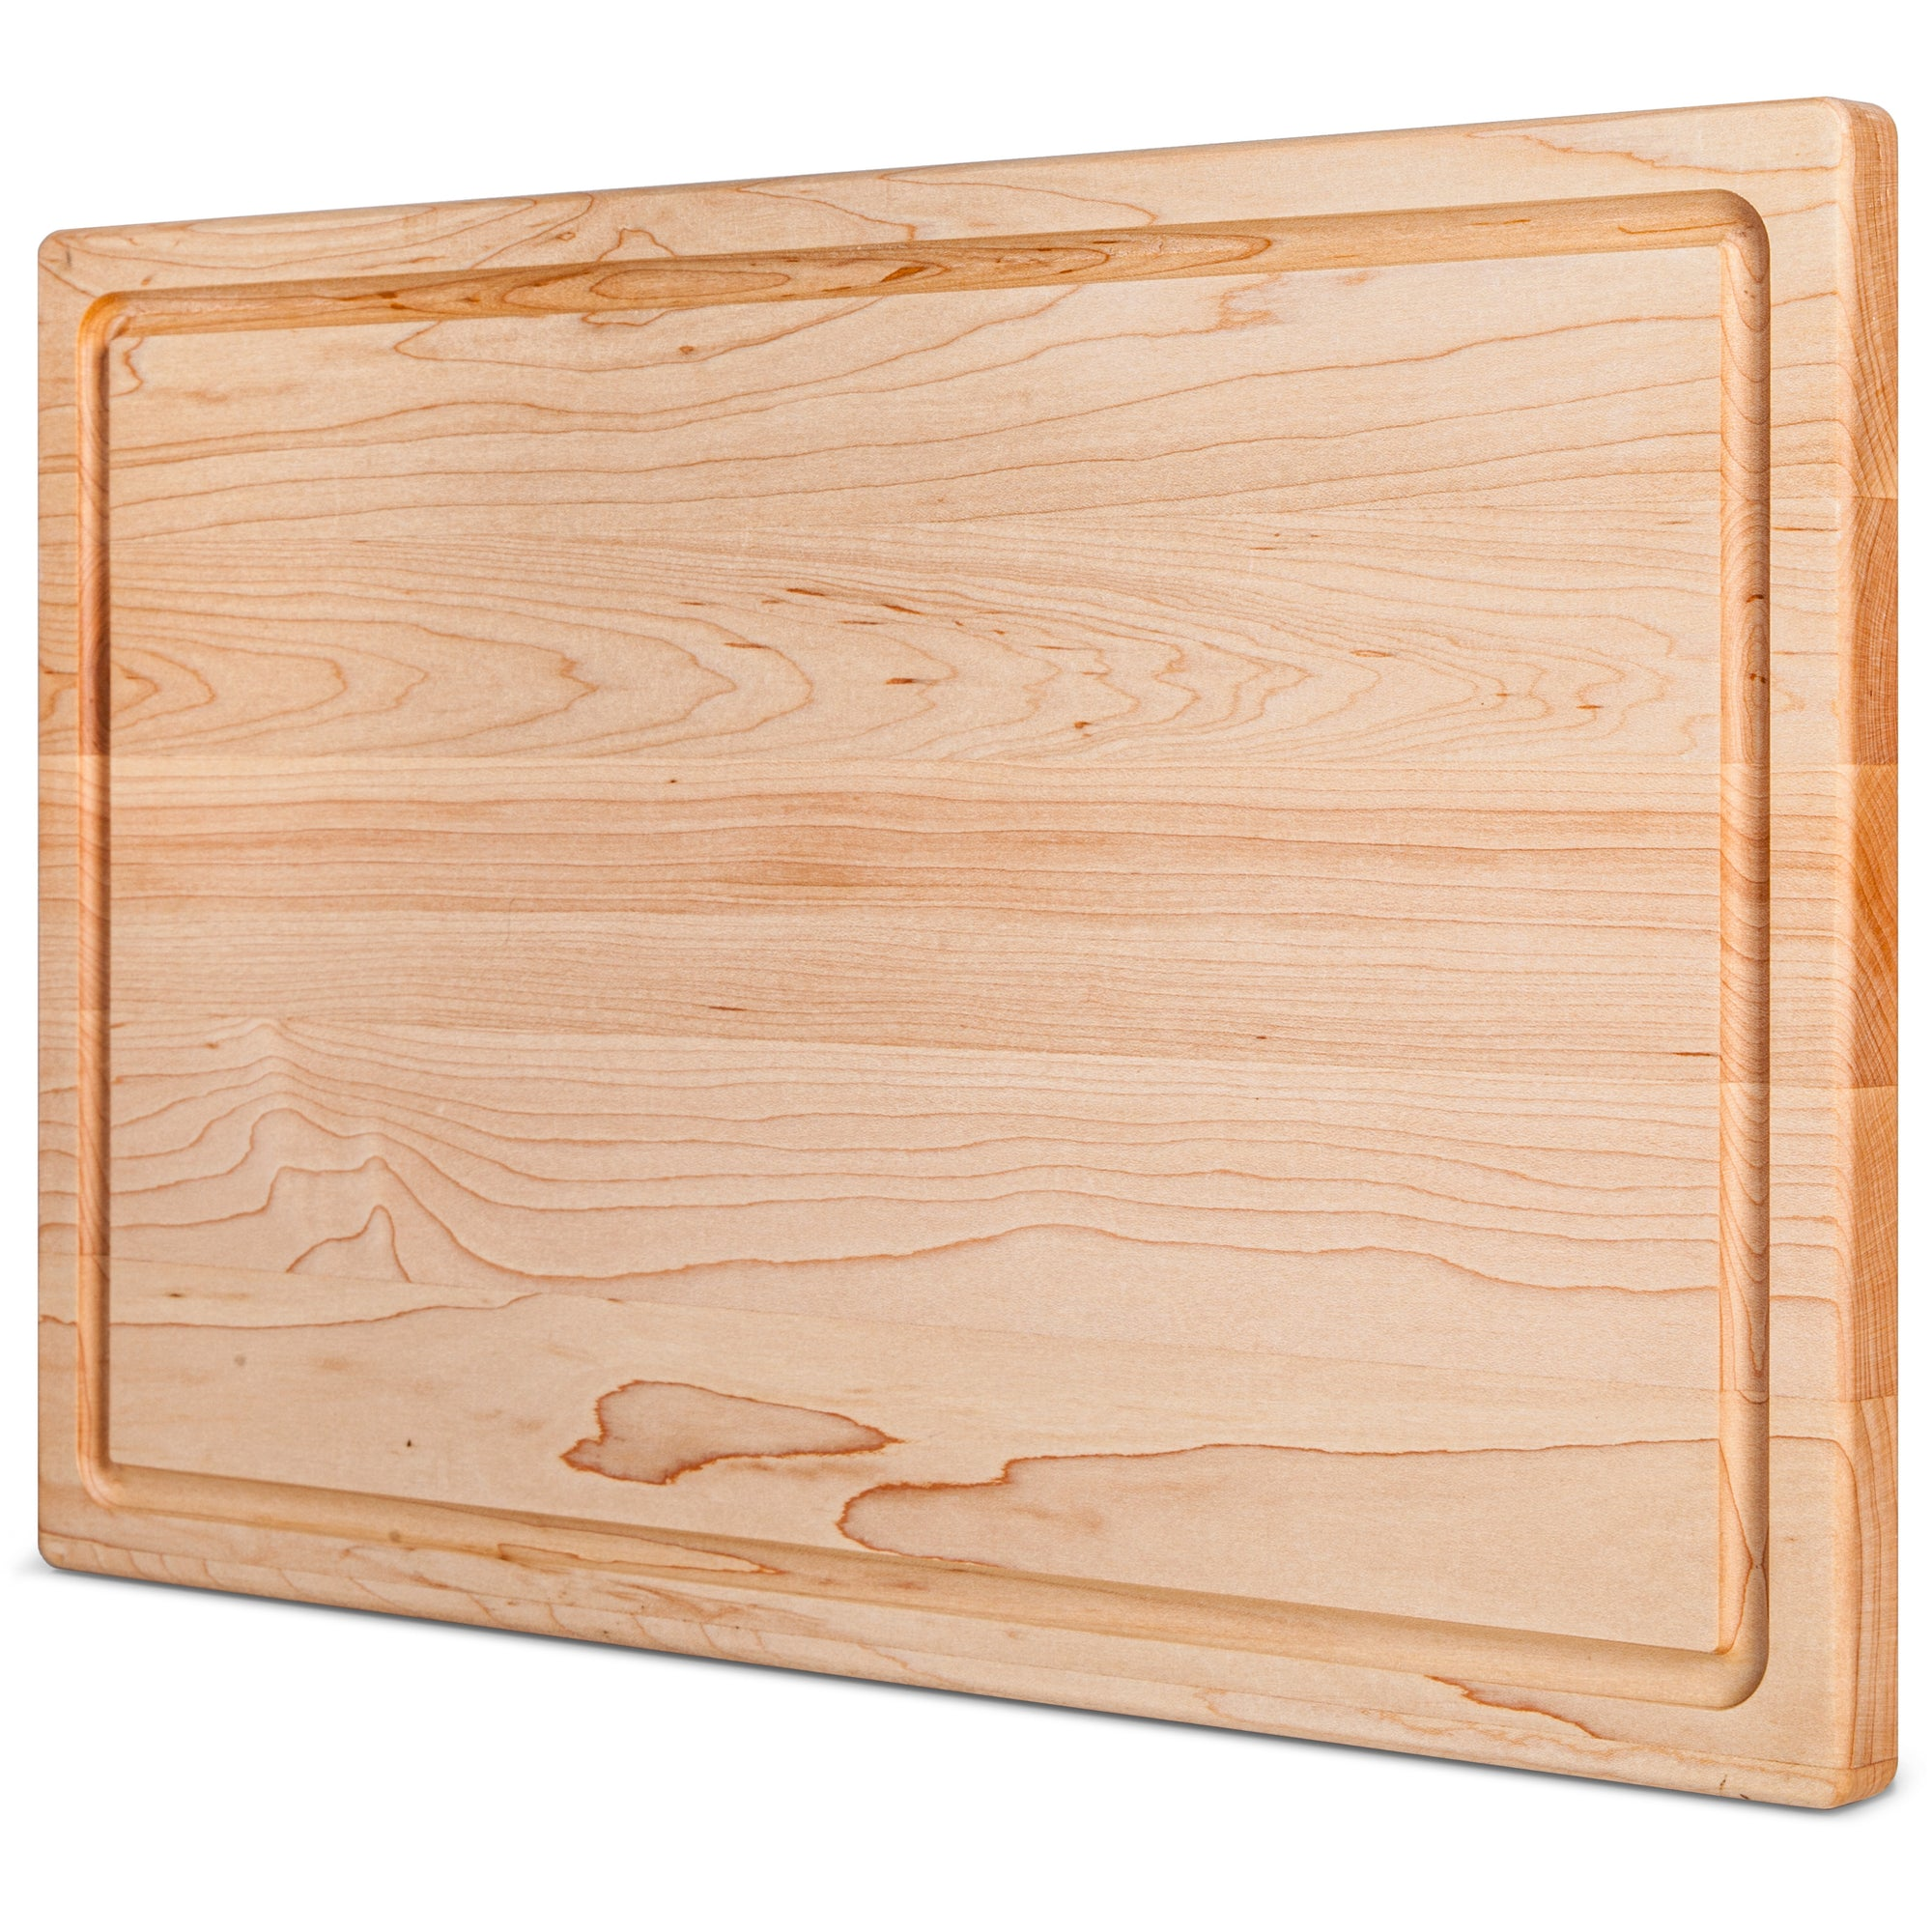 17x11x0.75'' Flat Grain Maple Cutting Board with Juice Grooves